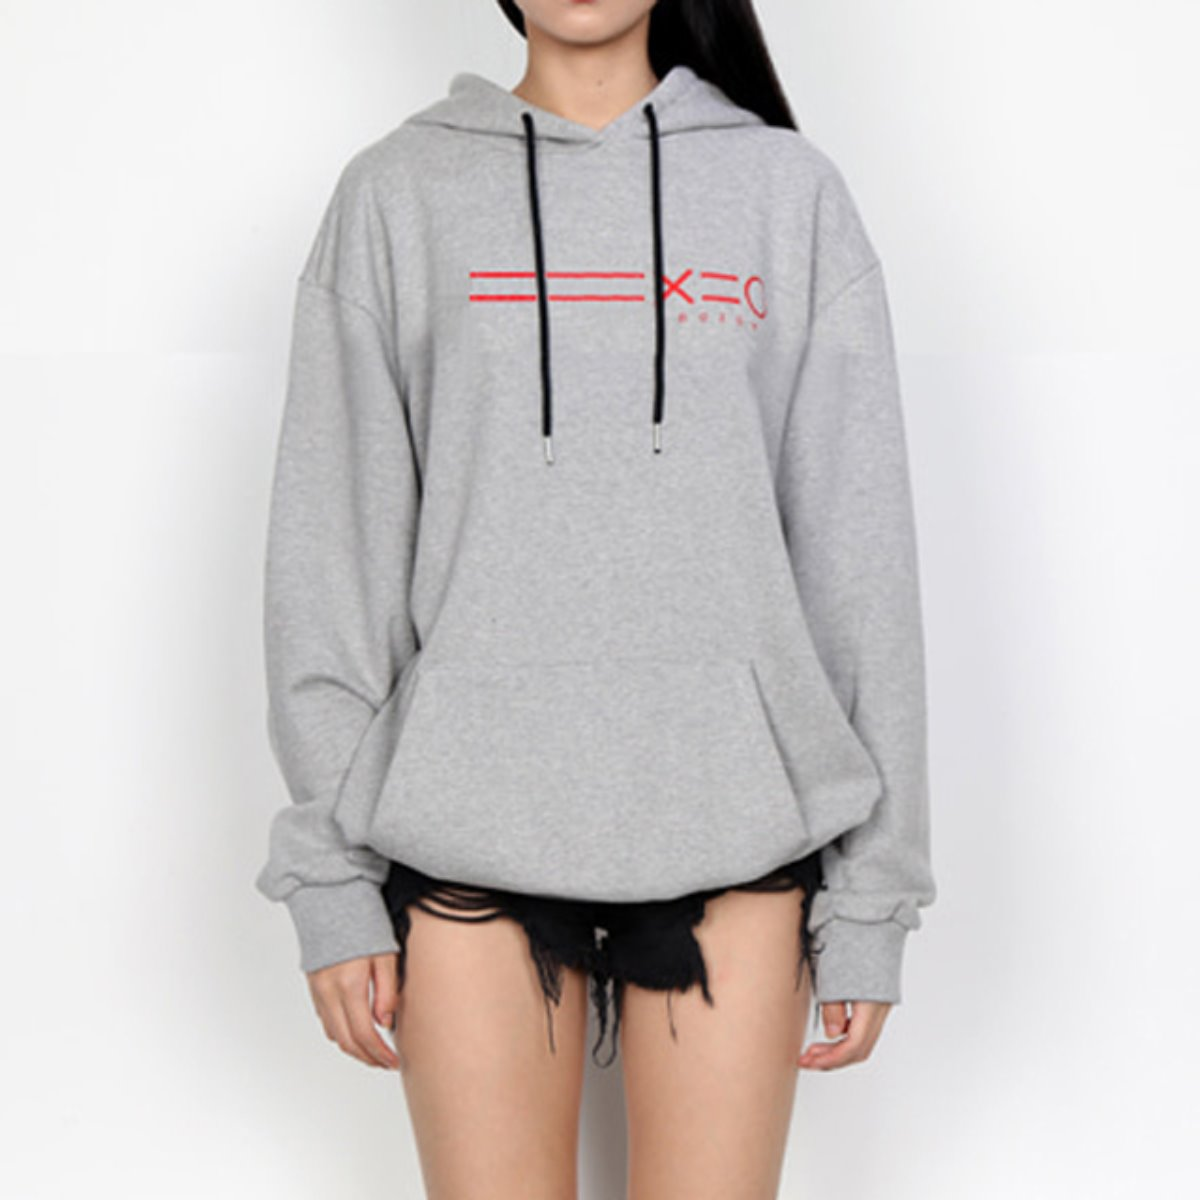 RED EQUAL LINE & LOGO HOODIE SWEATSHIRTS(GREY)